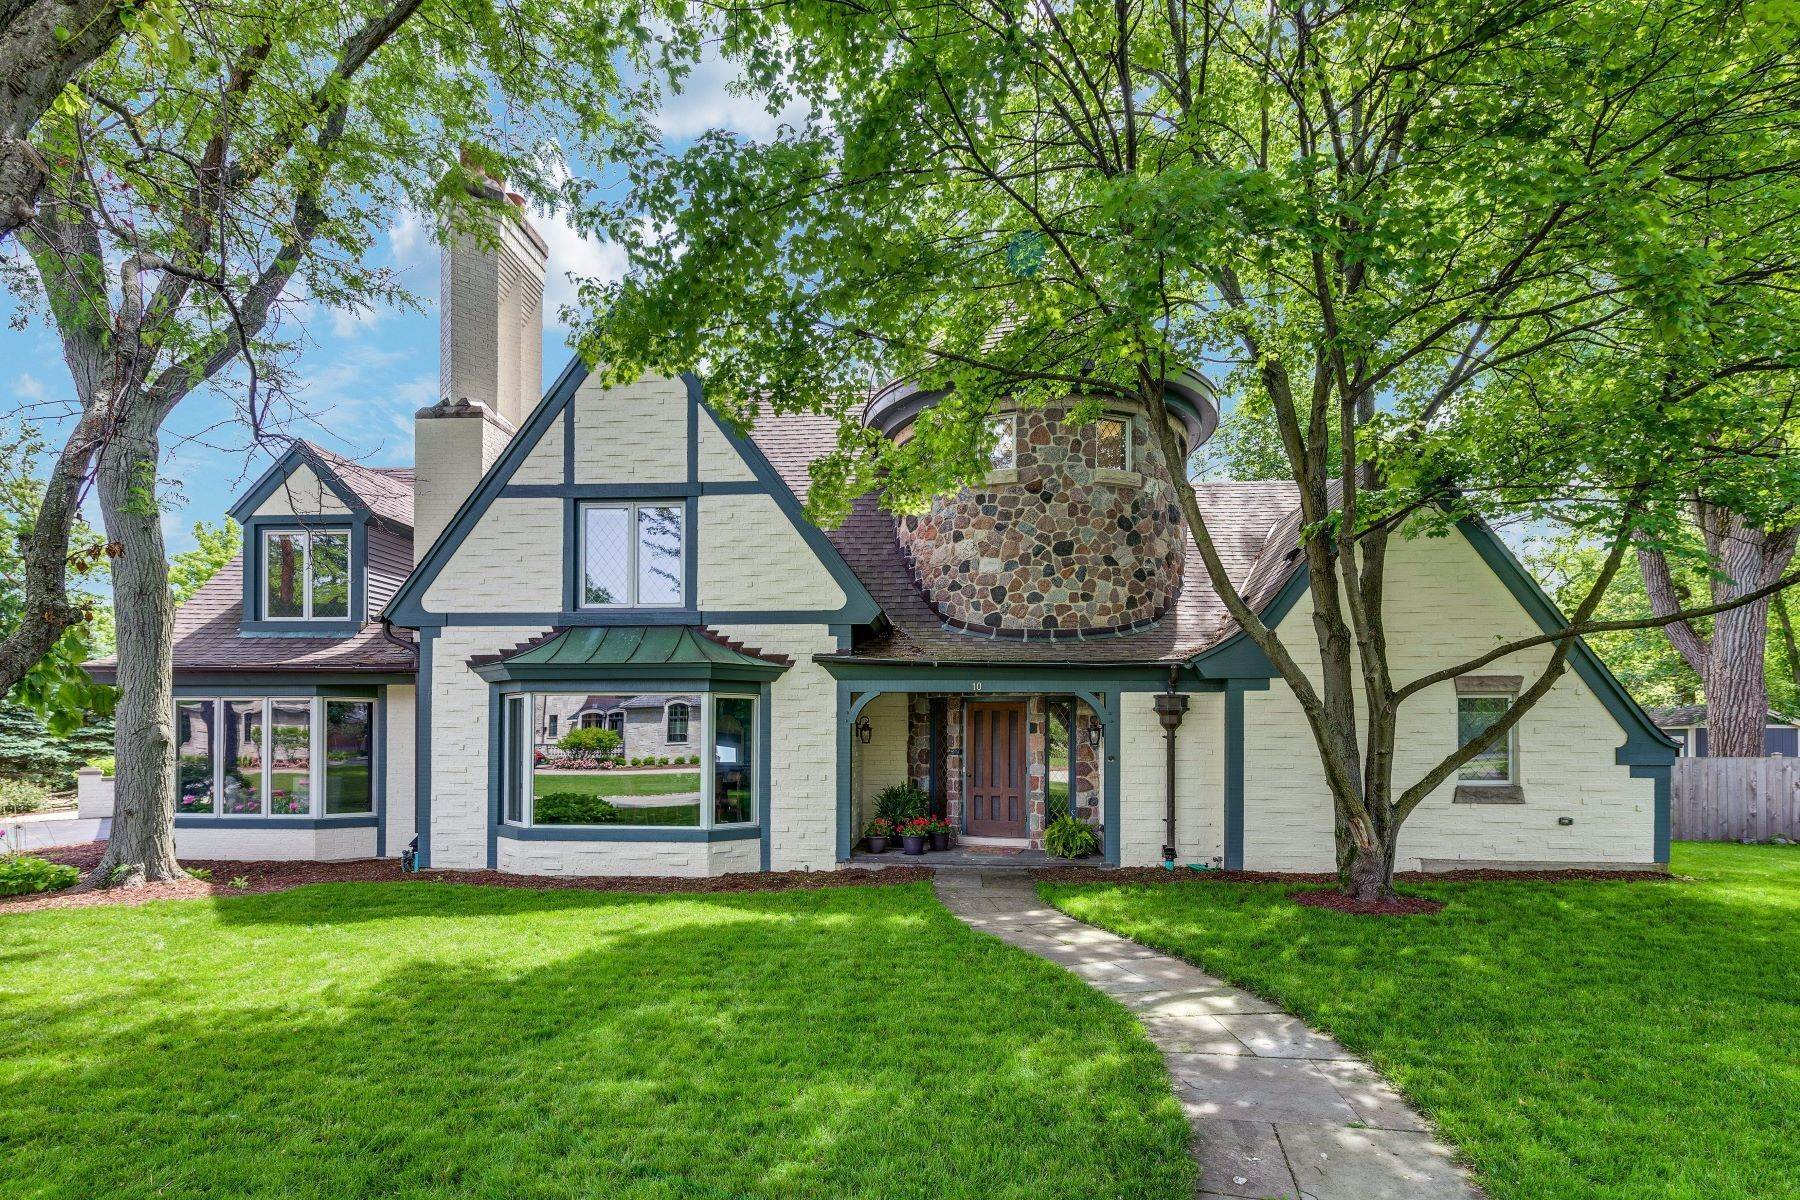 Property for Sale at Prepare to be Charmed 10 Henneberry Lane Golf, Illinois 60029 United States